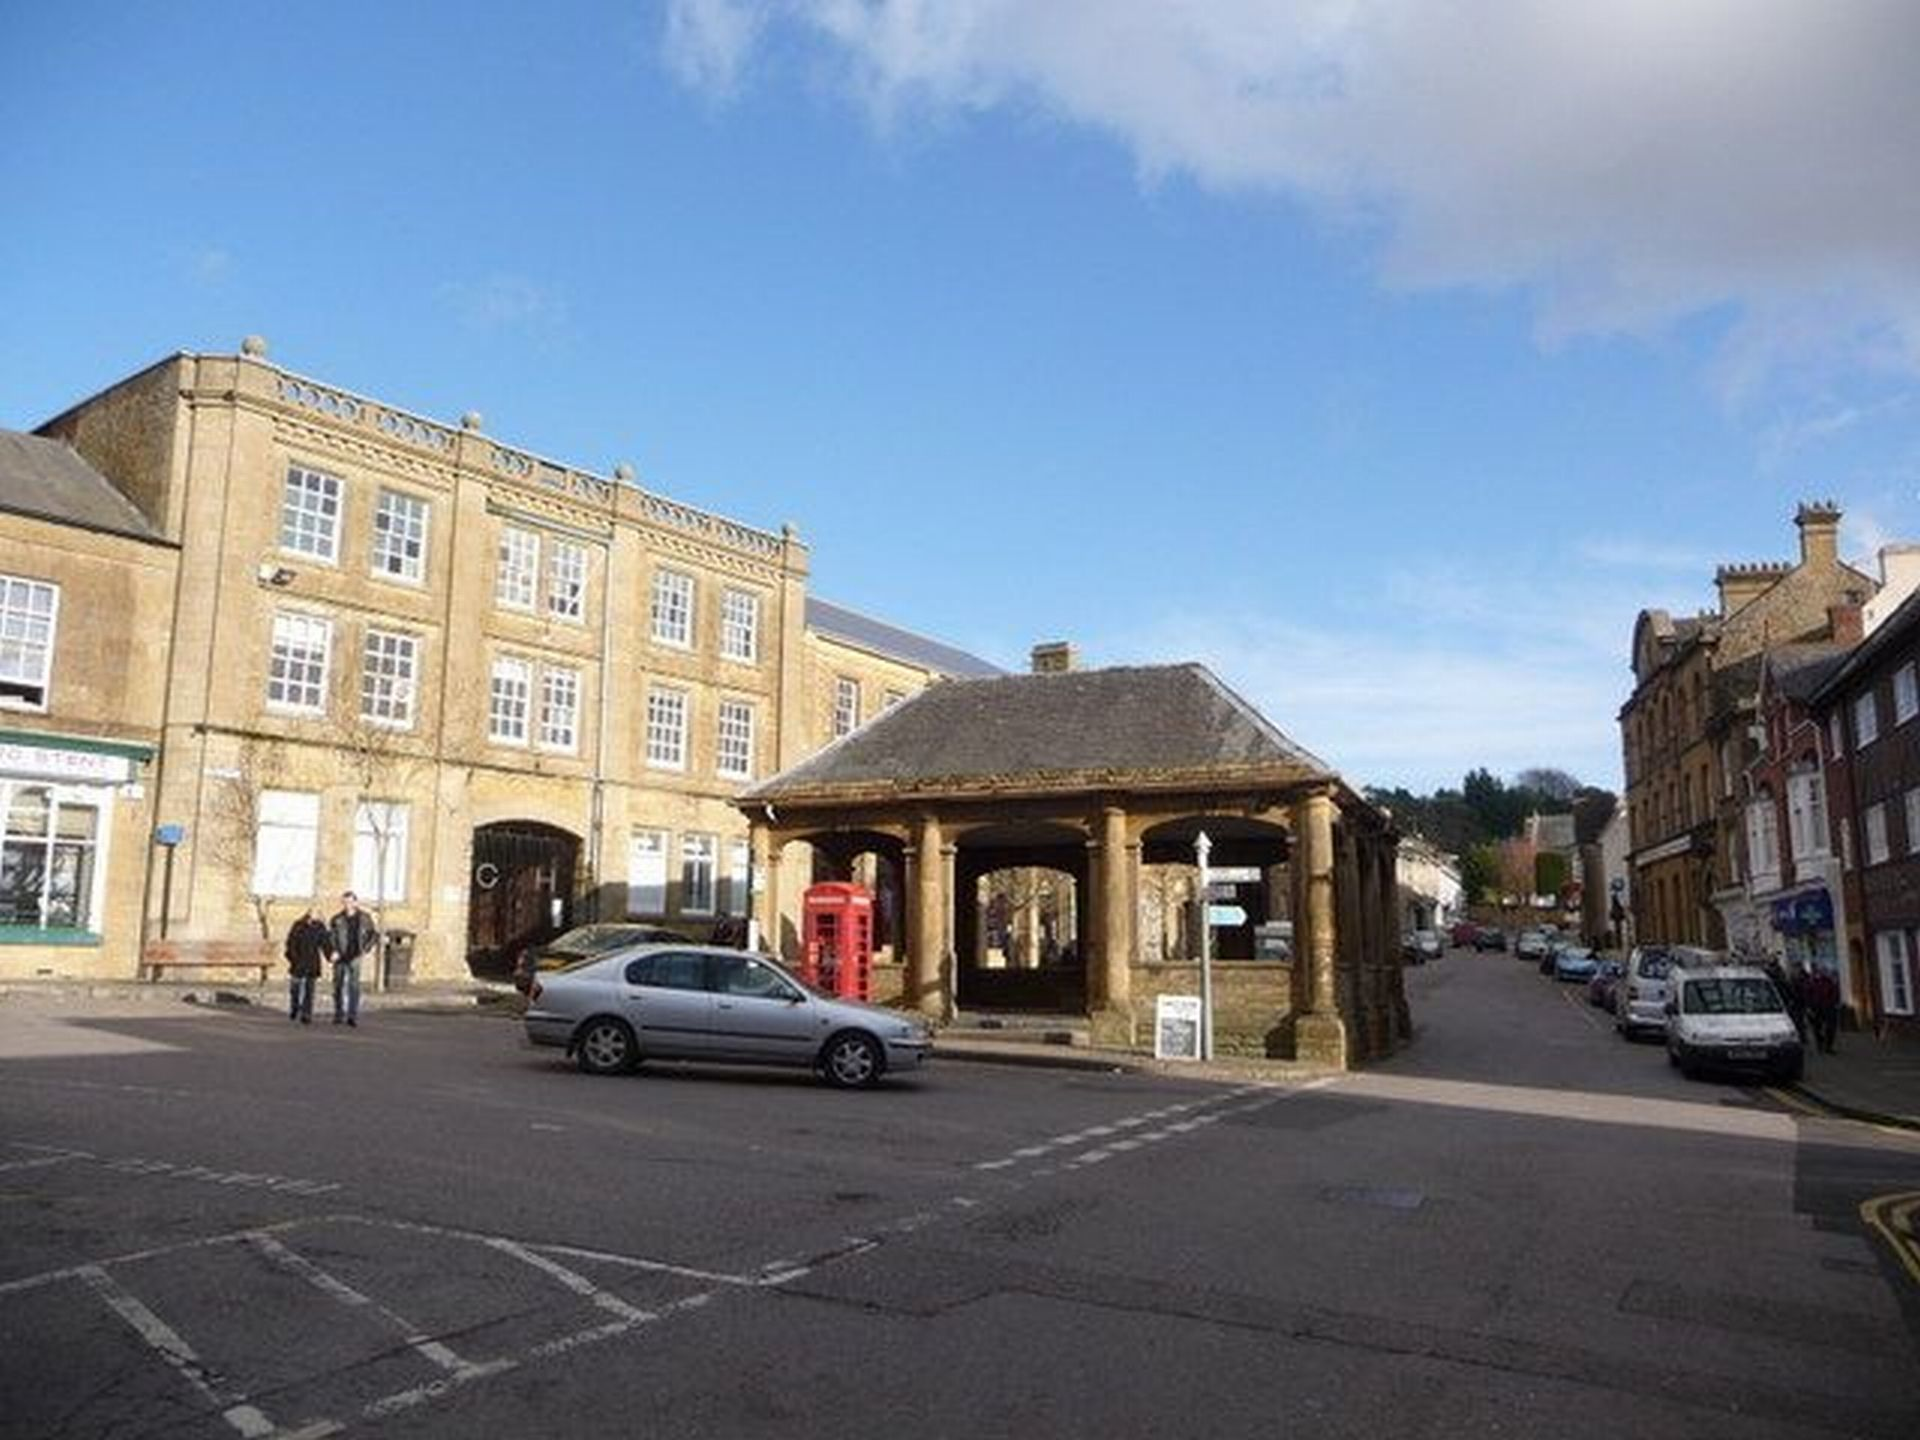 PLANS IN PLACE: The event is being run from The Market House in Ilminster